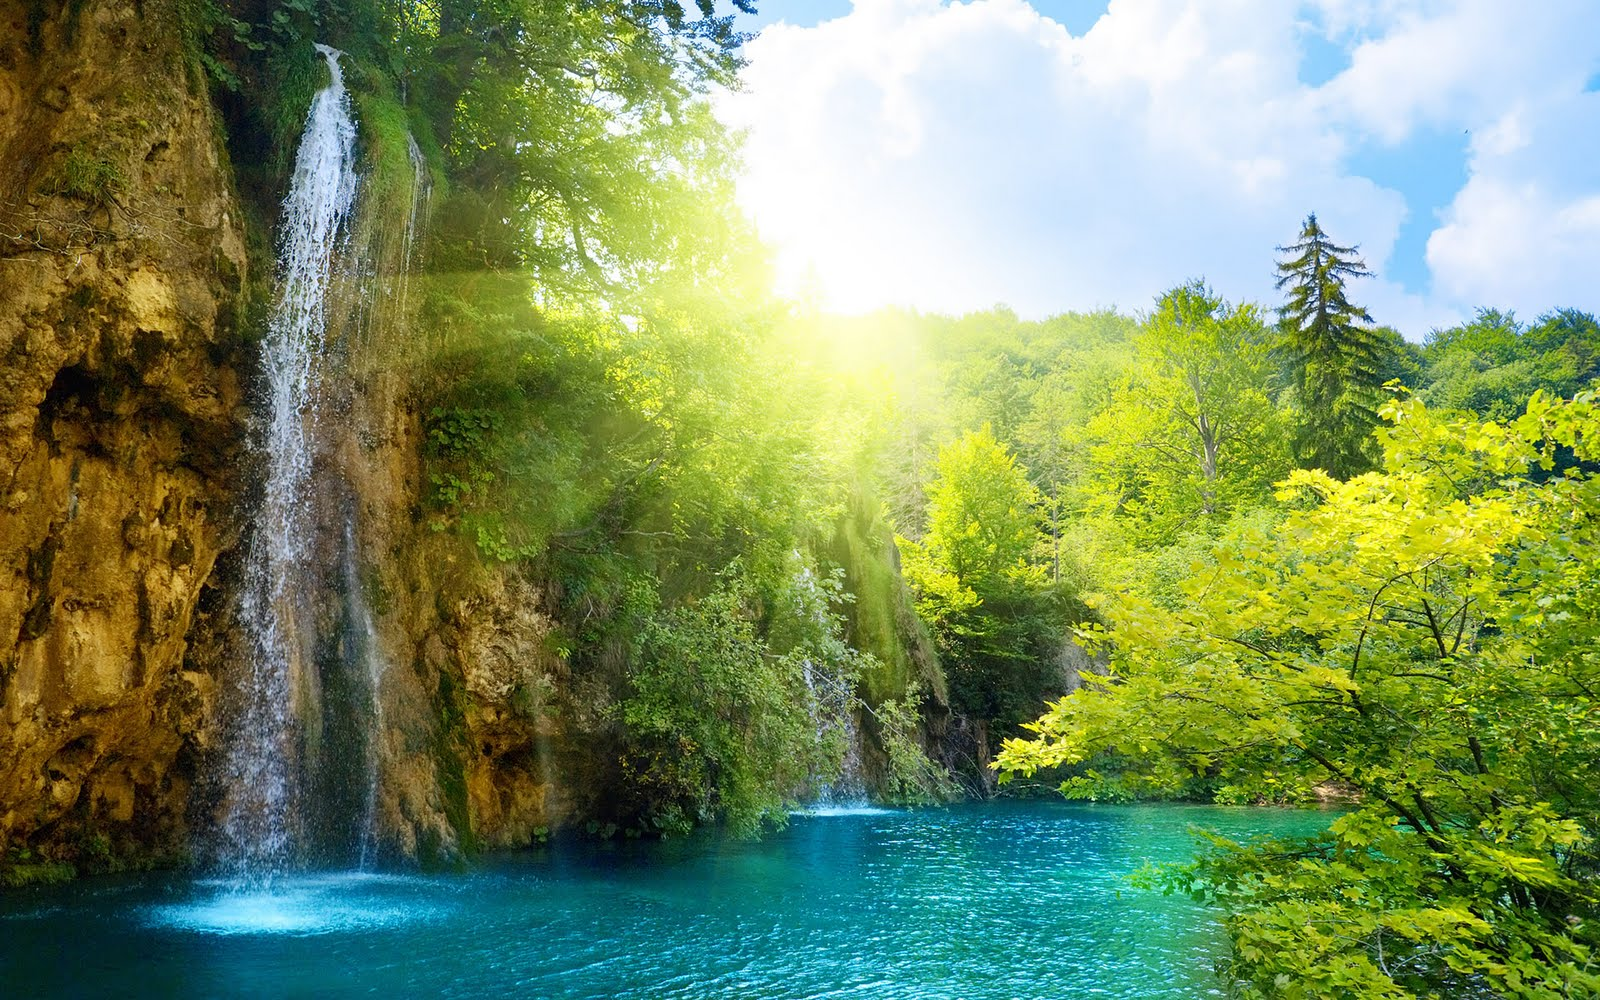 beauty spring nature around amazing desktop natural wallpapers awesome summer waterfall healing gorgeous most joy